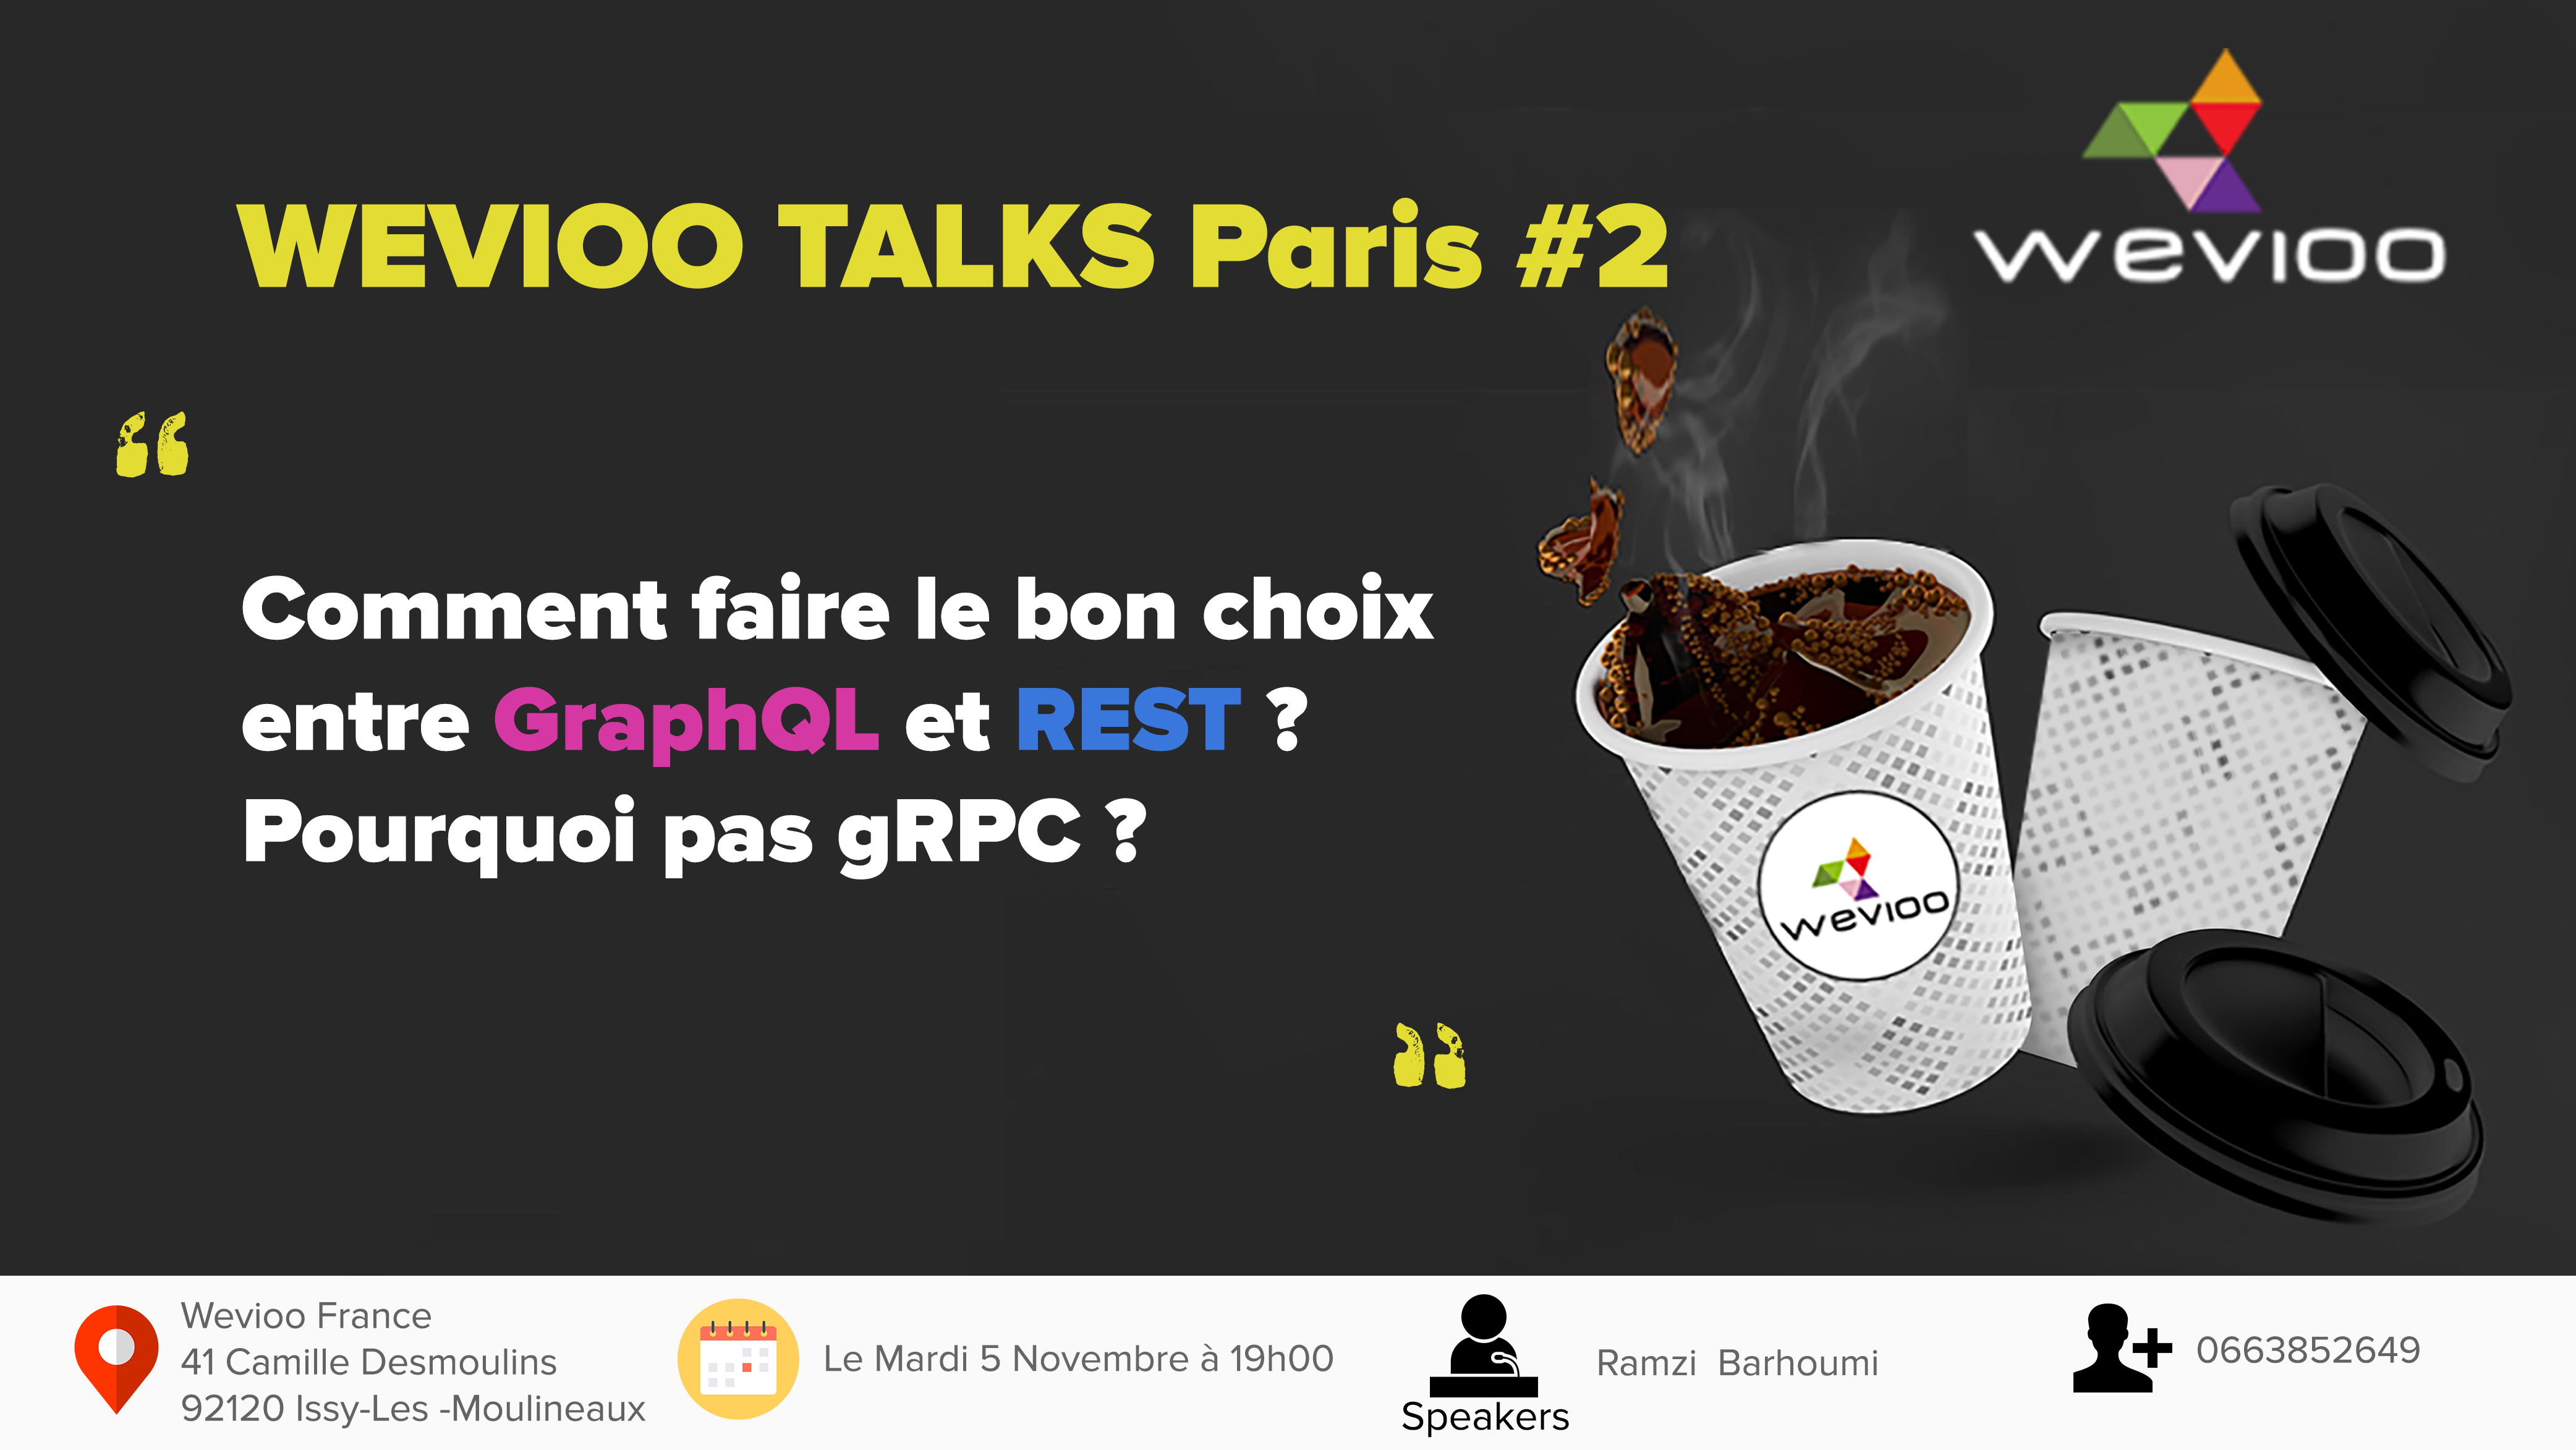 [ MEET UP ] WEVIOO Talks Paris #2